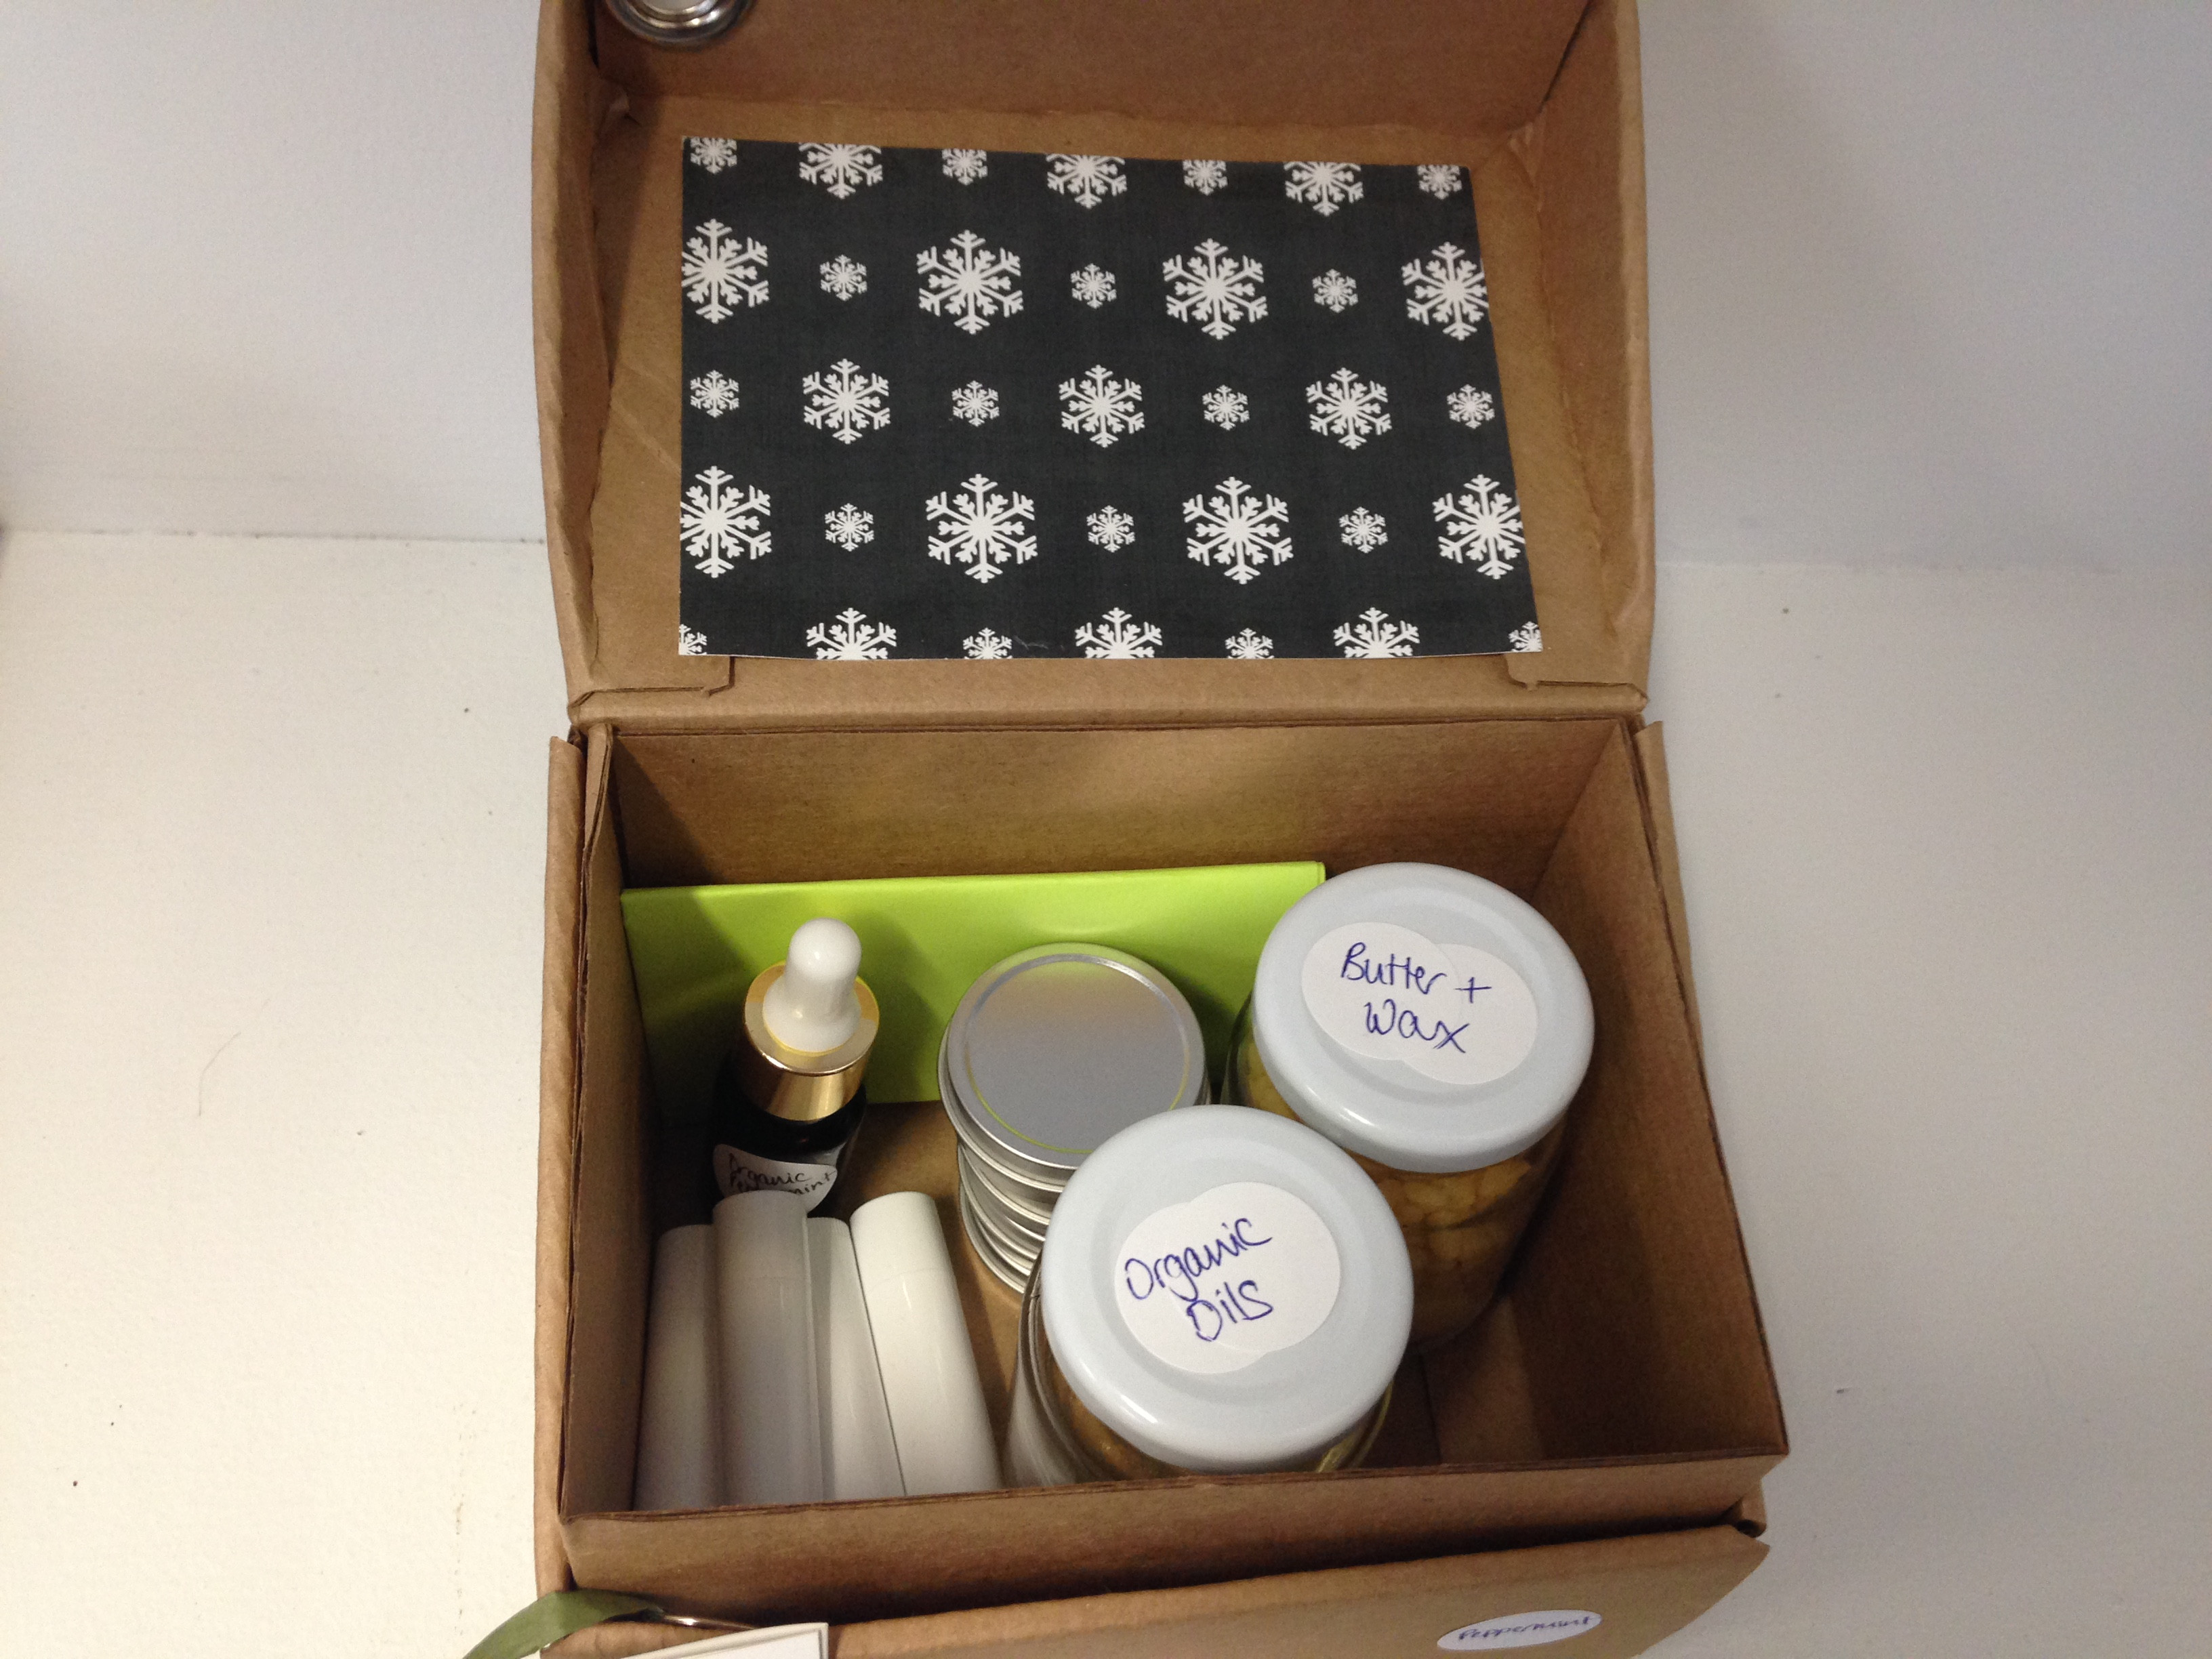 Best ideas about DIY Lip Balm Kit . Save or Pin DIY Lip Balm Kit Organic ViVi TherapyViVi Therapy Now.